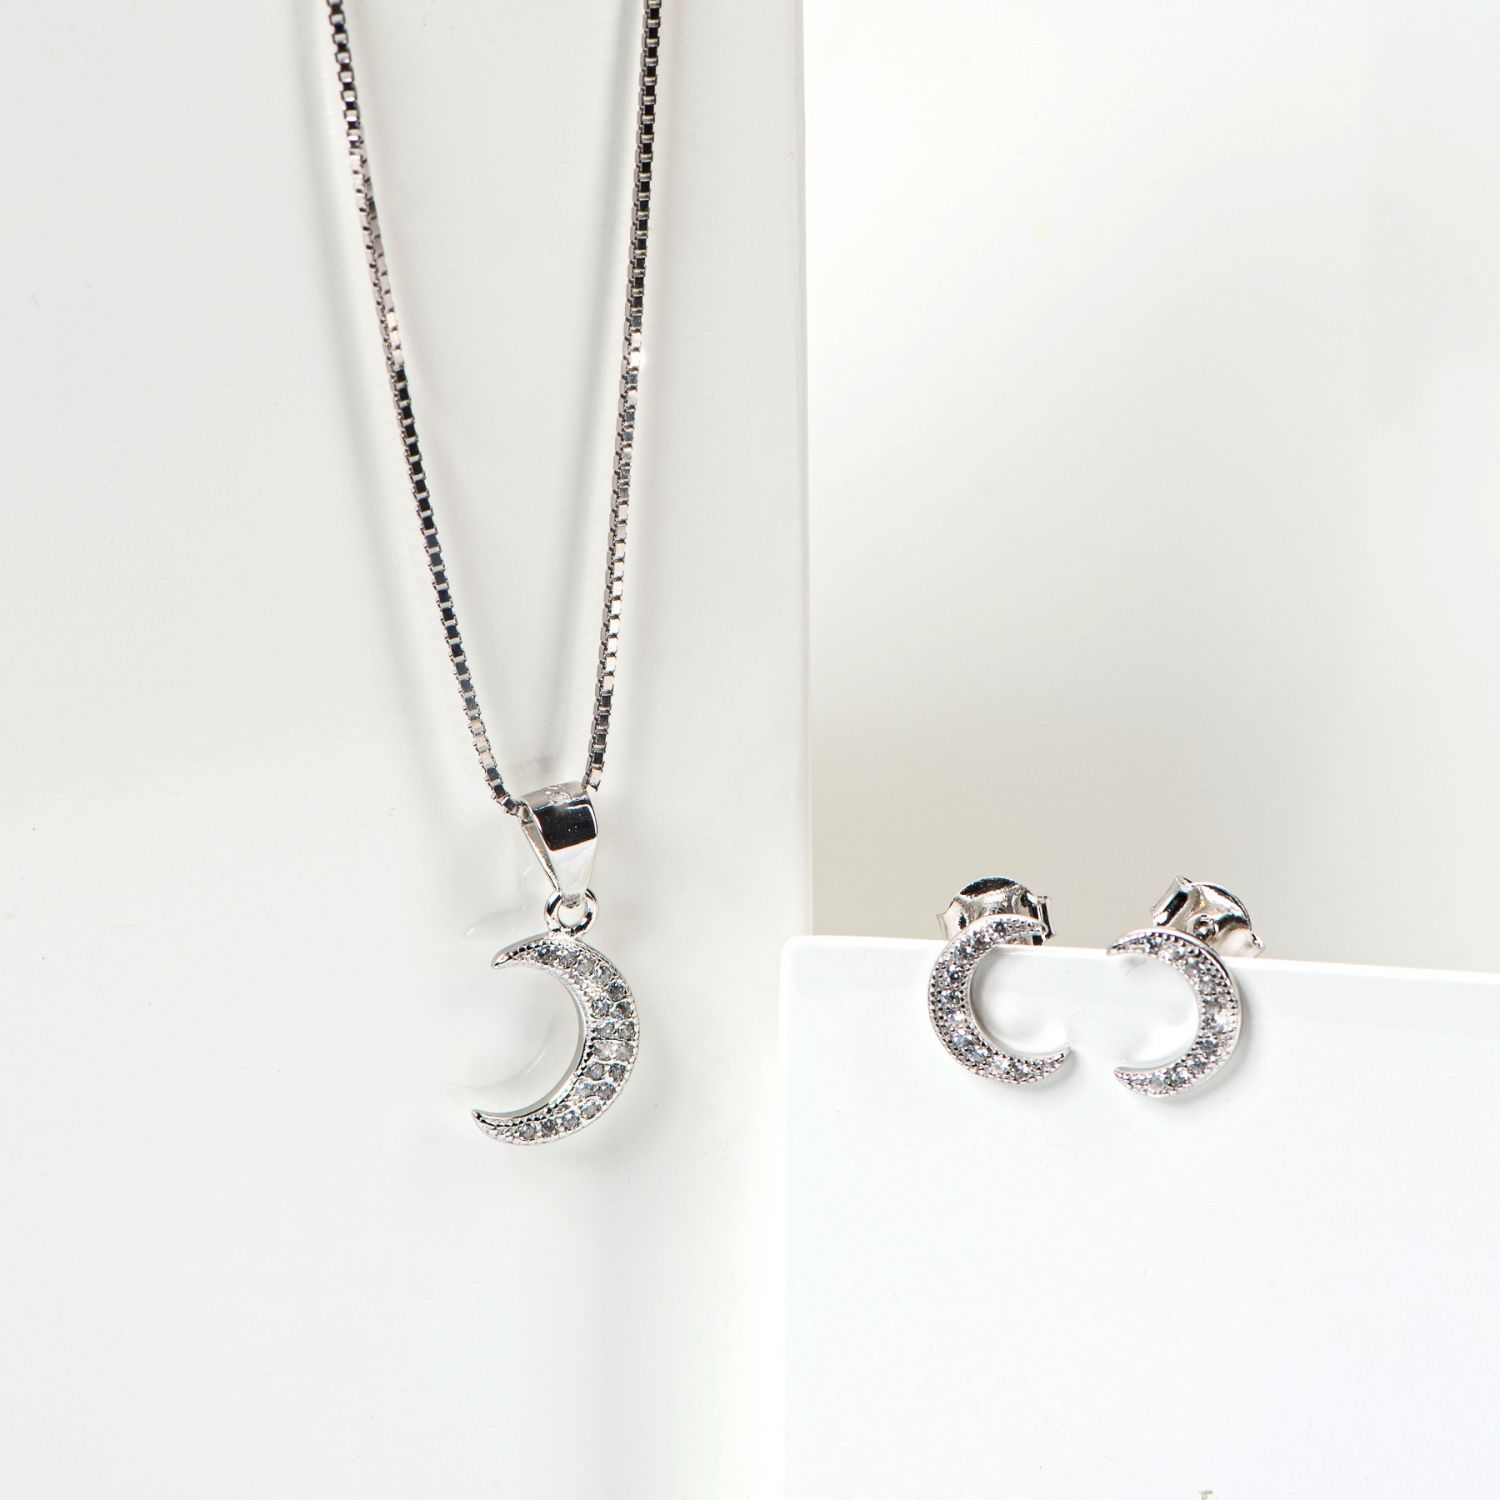 Sterling Silver Earrings, Chain and Pandant White Moonlight